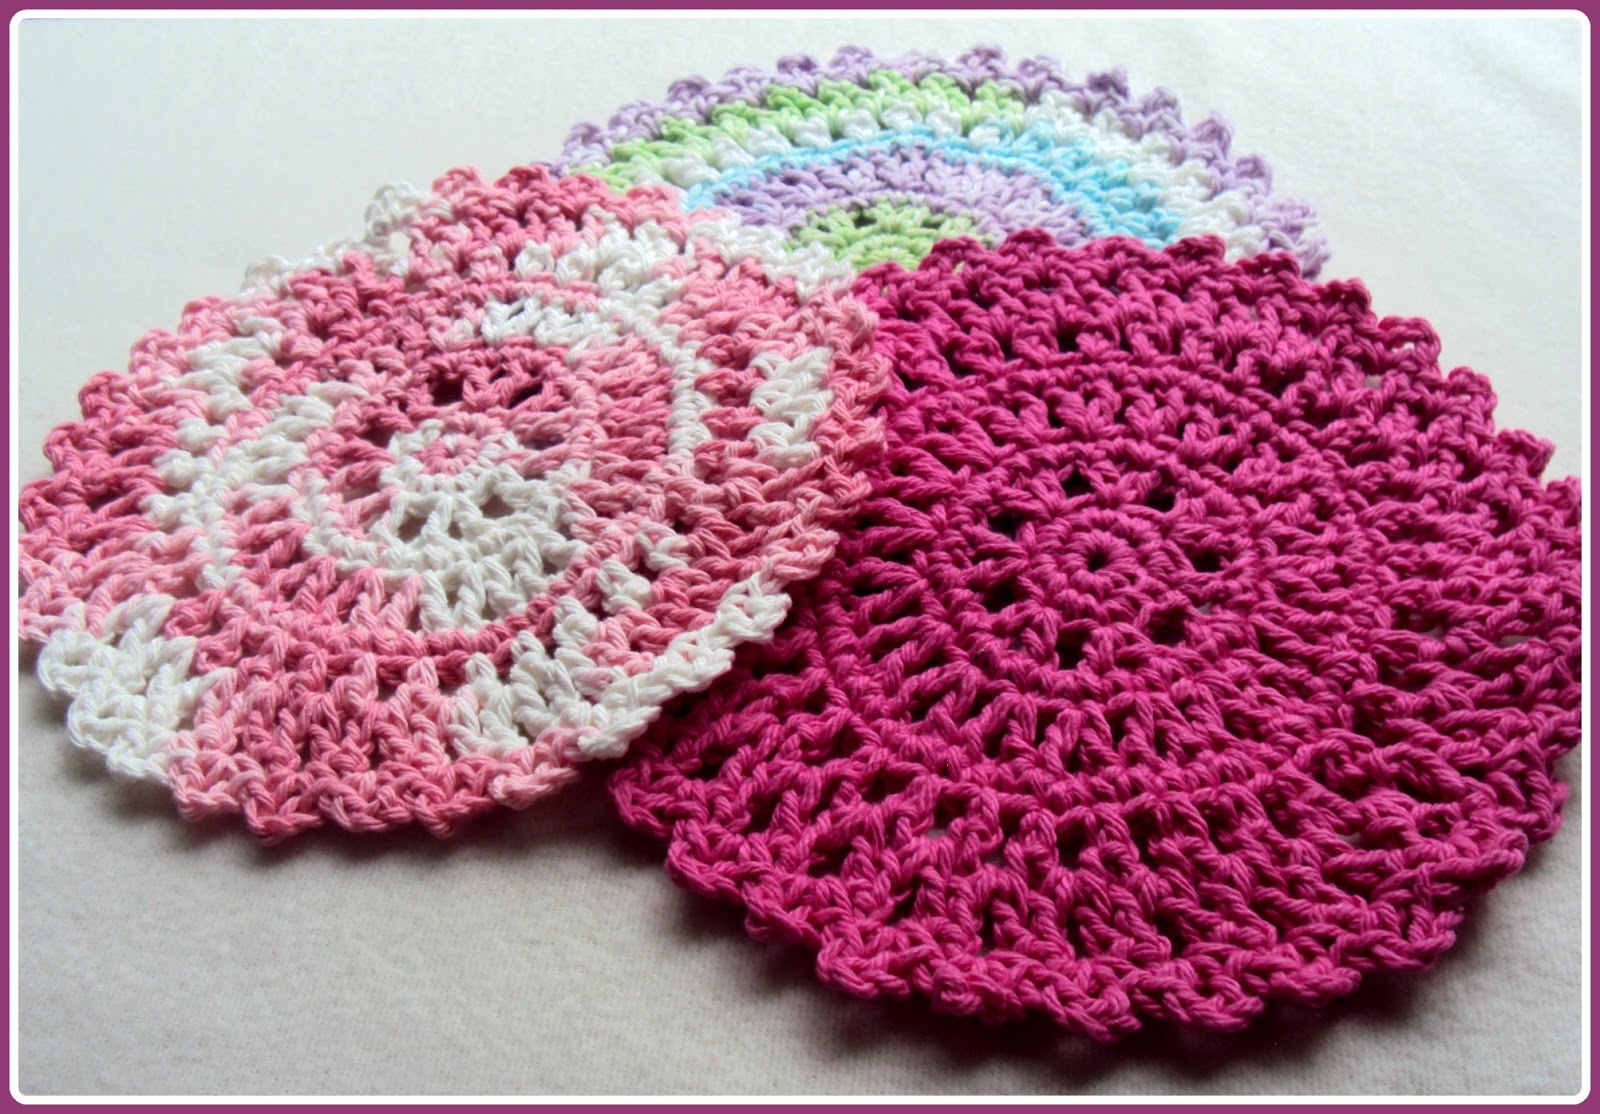 Crochet Patterns With Cotton Yarn : ... up quickly and beautifully when using both acrylic or cotton yarns